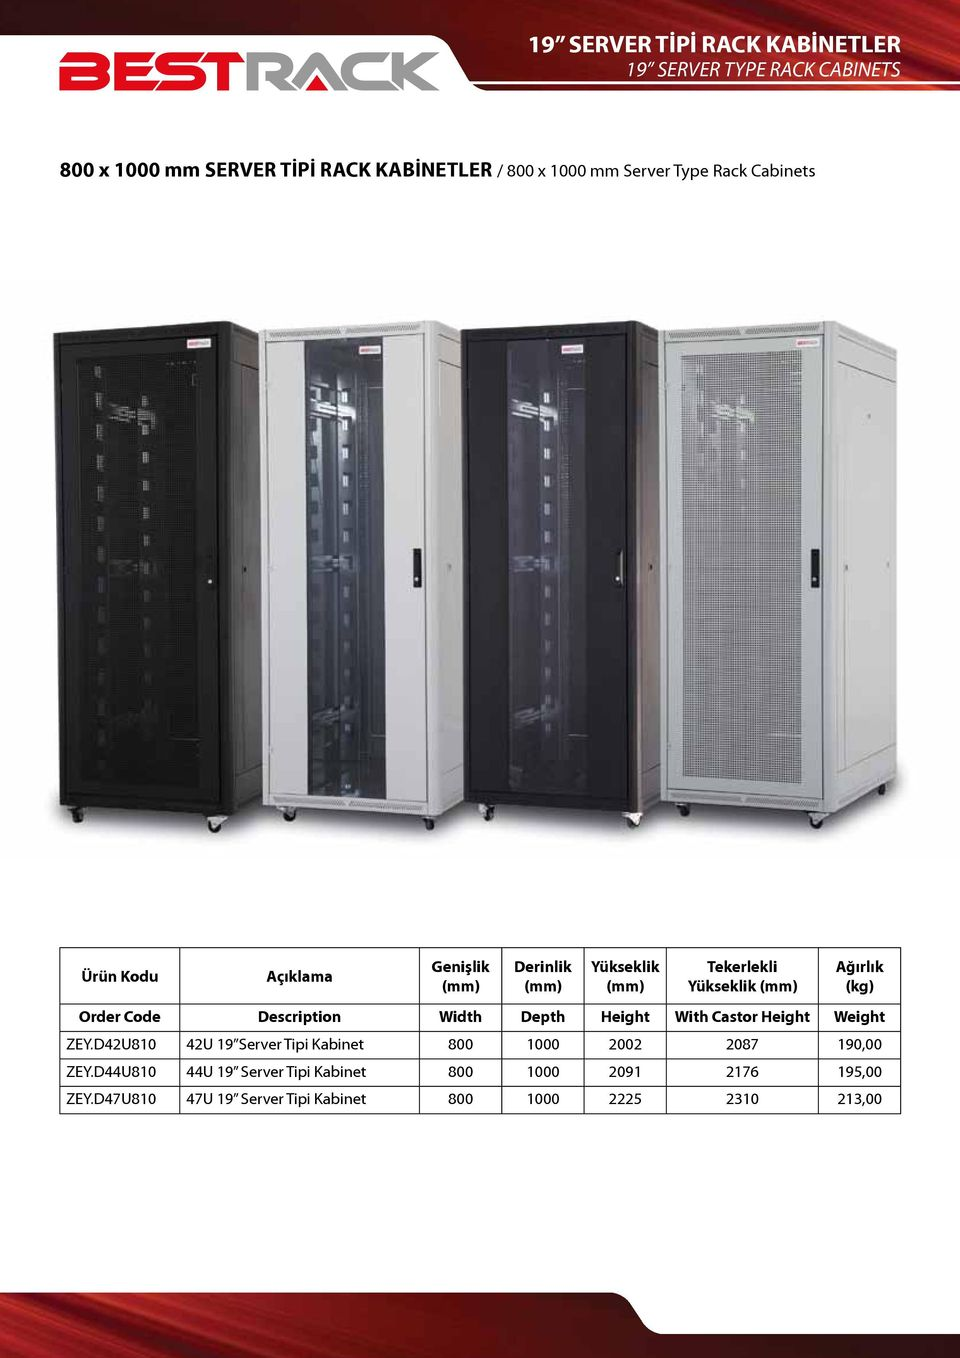 Castor Height Weight ZEY.D42U810 42U 19 Server Tipi Kabinet 800 1000 2002 2087 190,00 ZEY.